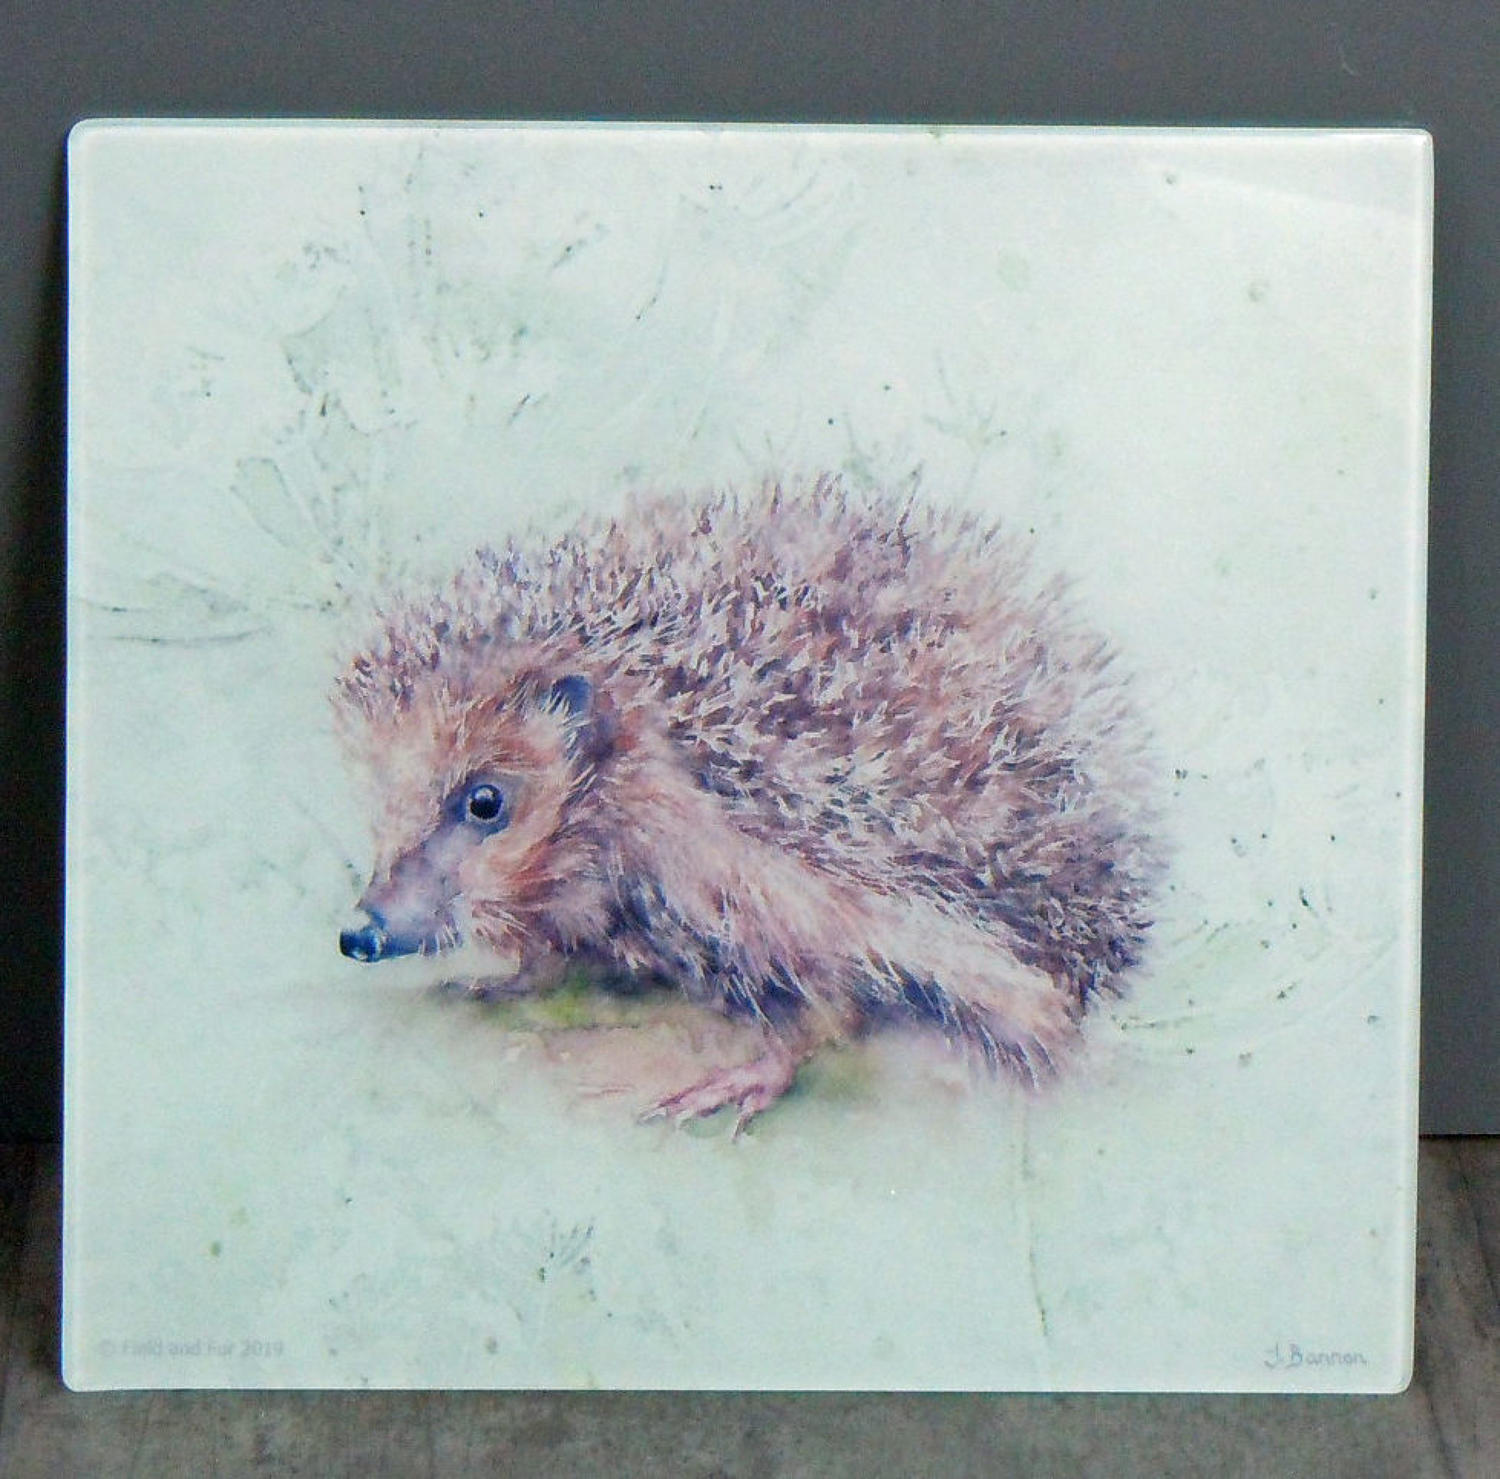 Glass Hedgehog chopping board, worktop saver